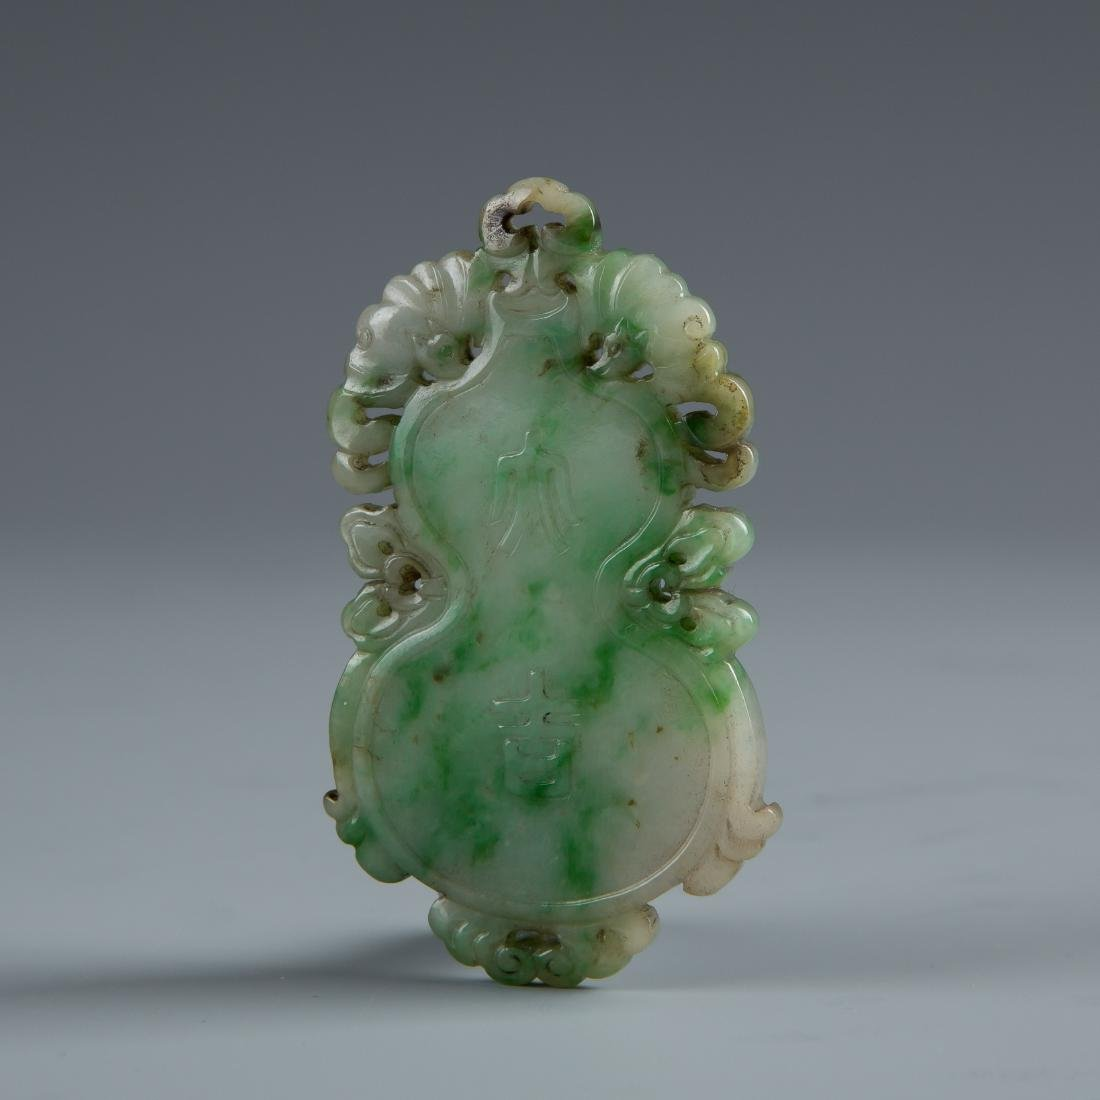 Carved Jadeite Pendant with Chinese Characters - 2